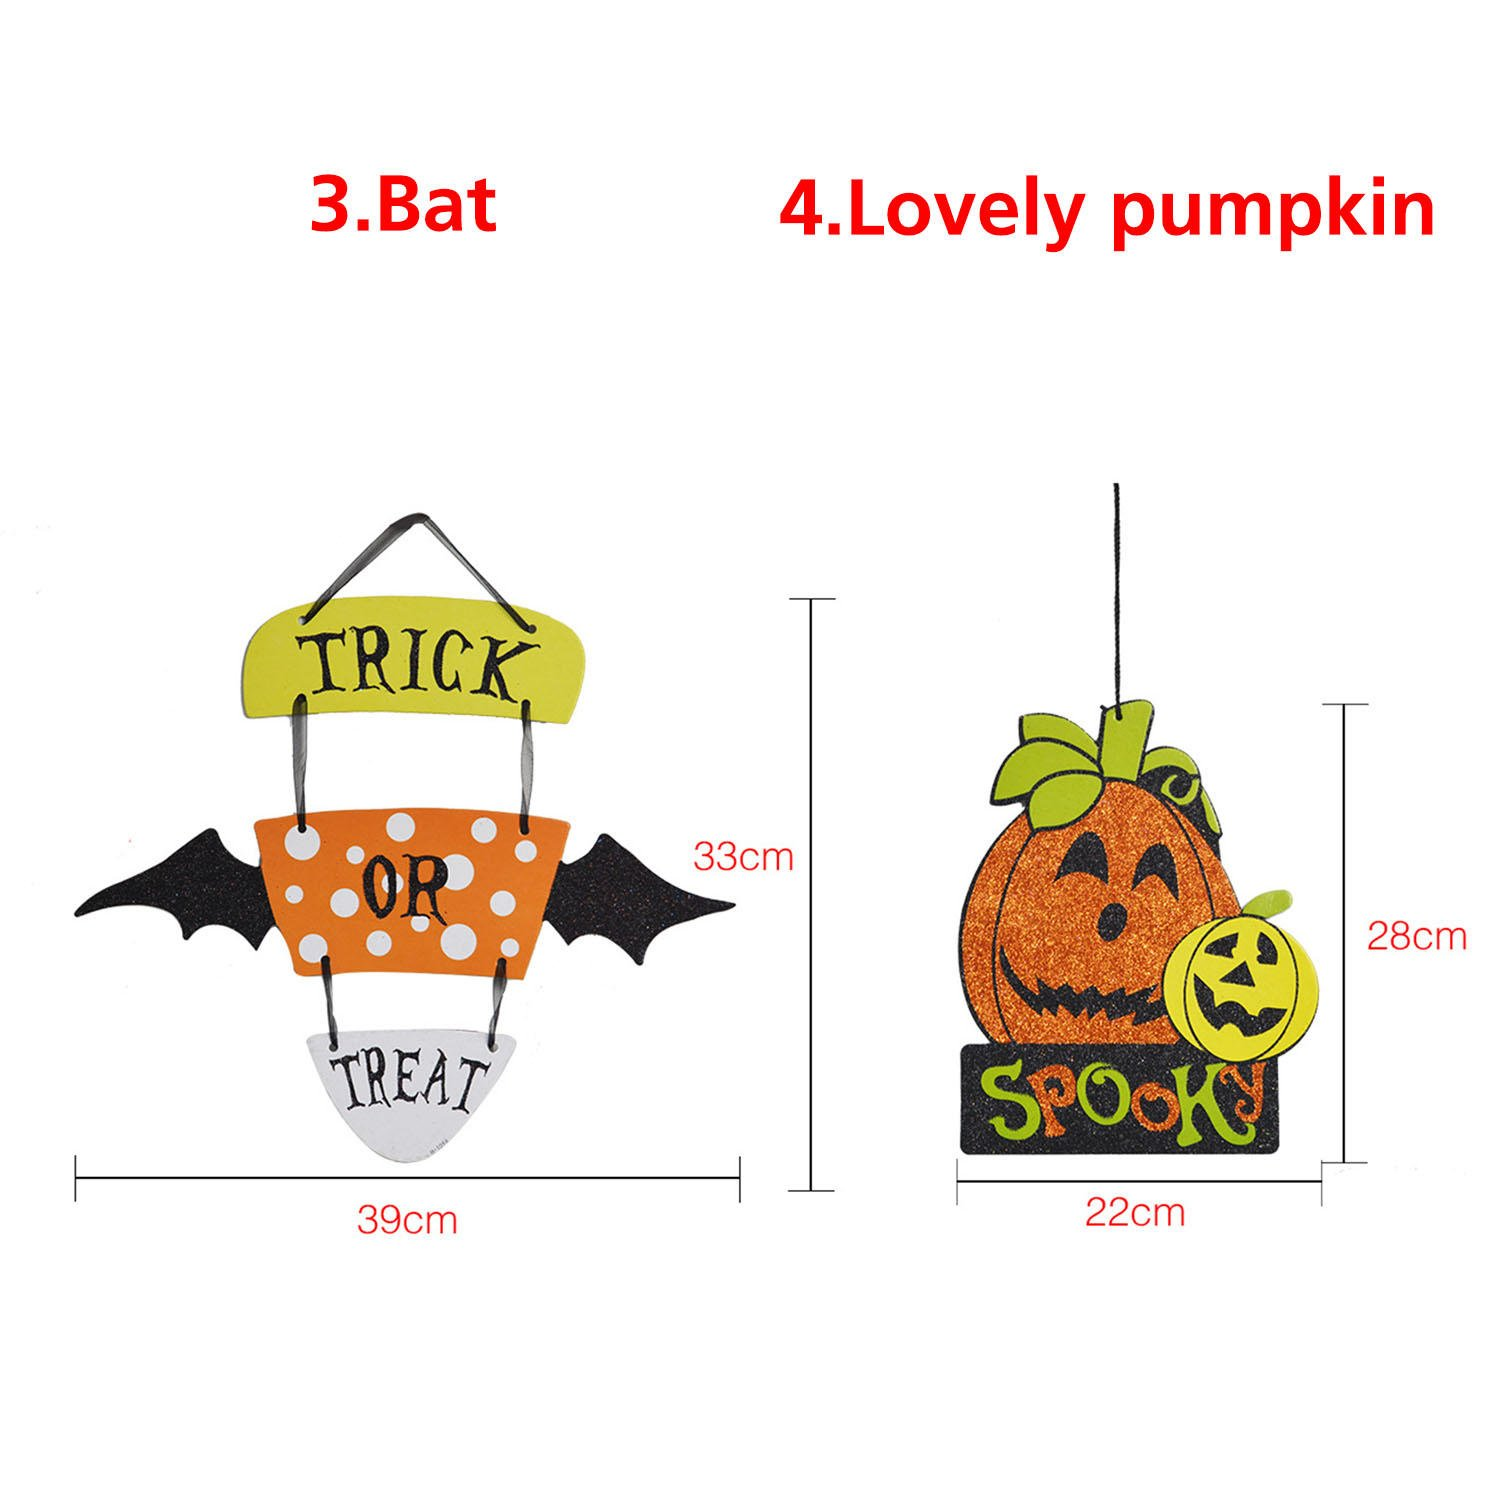 Parody Dangling - Halloween Spoof Hanging Decoration Pumpkin Ghost Skull Witch Door Hanger Supply - Sendup Suspended Pasquinade Charade Wall Mockery Supported Takeoff Lampoon - 1PCs by Unknown (Image #1)